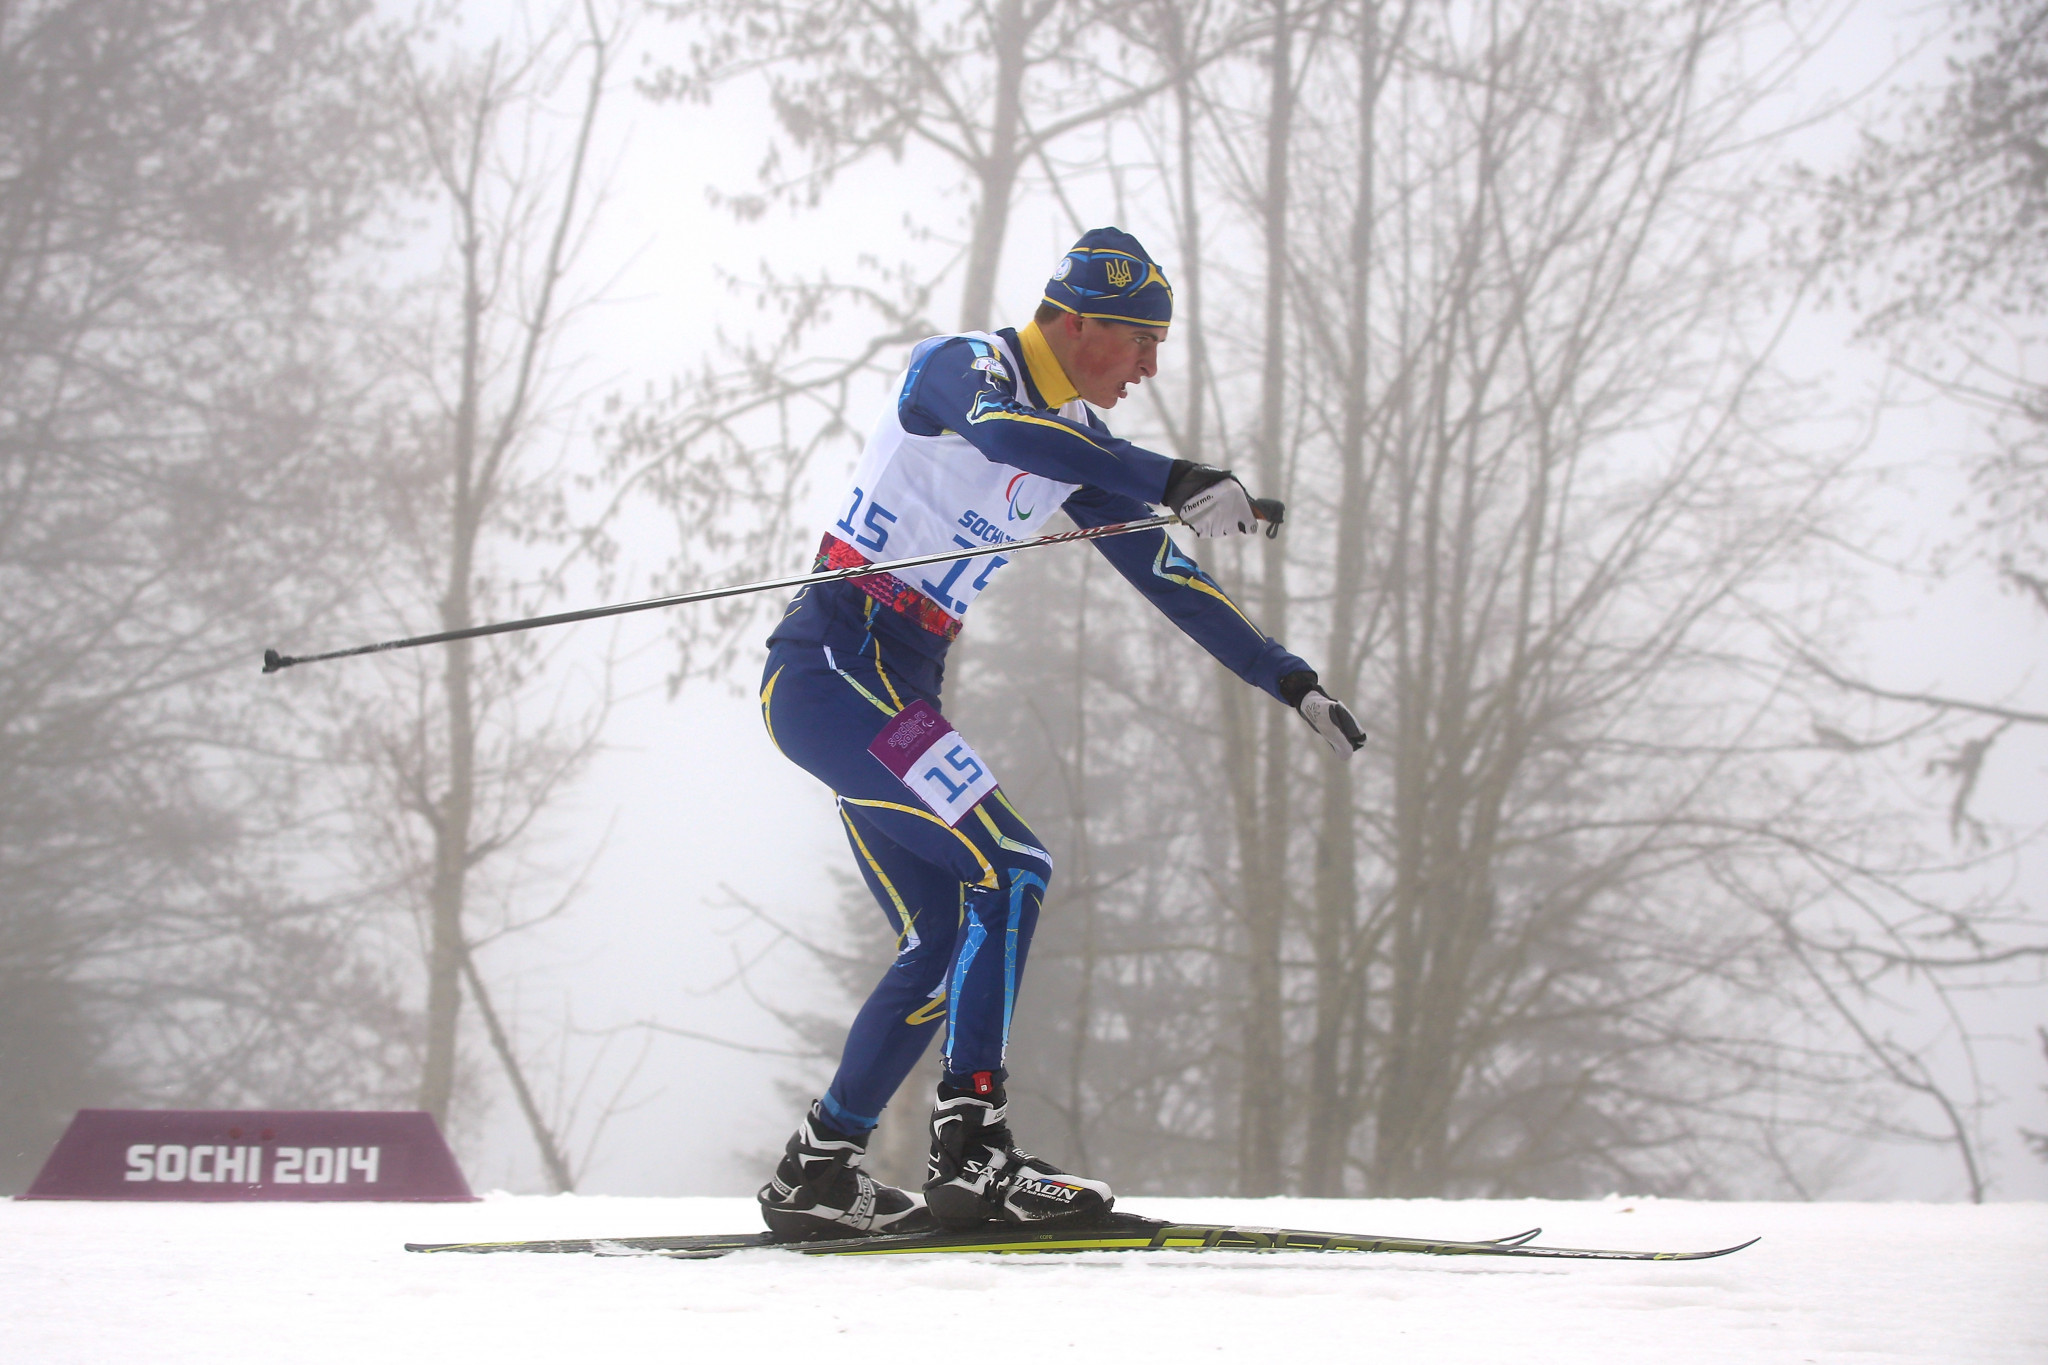 Final stage of World Para Nordic Skiing World Cup set to take place in Vuokatti